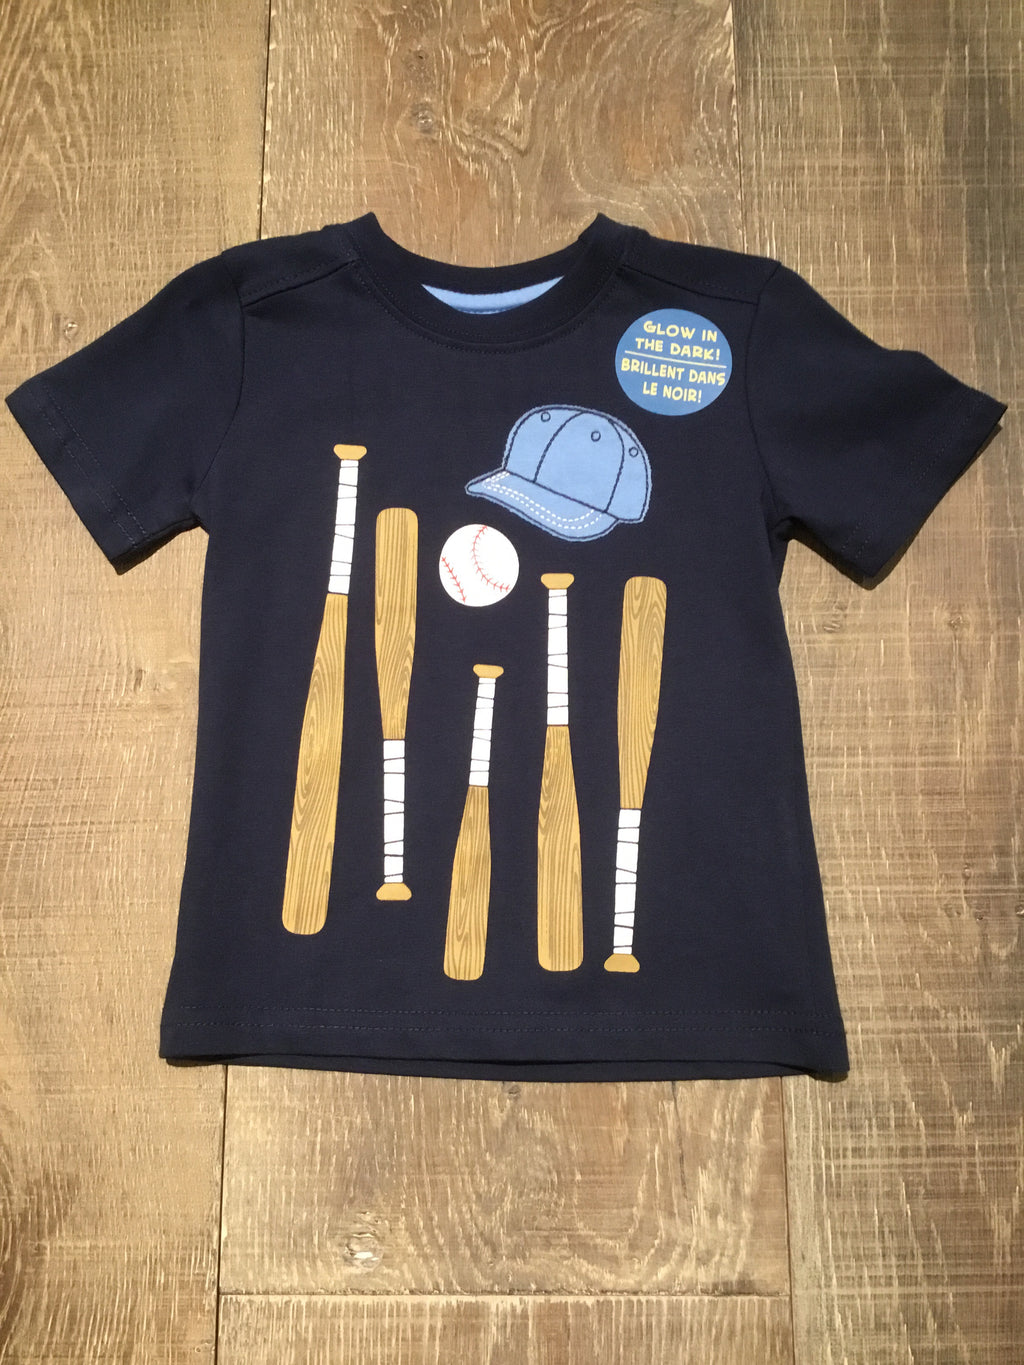 Baseball Bat & Hat Navy Tee GLOW IN DARK